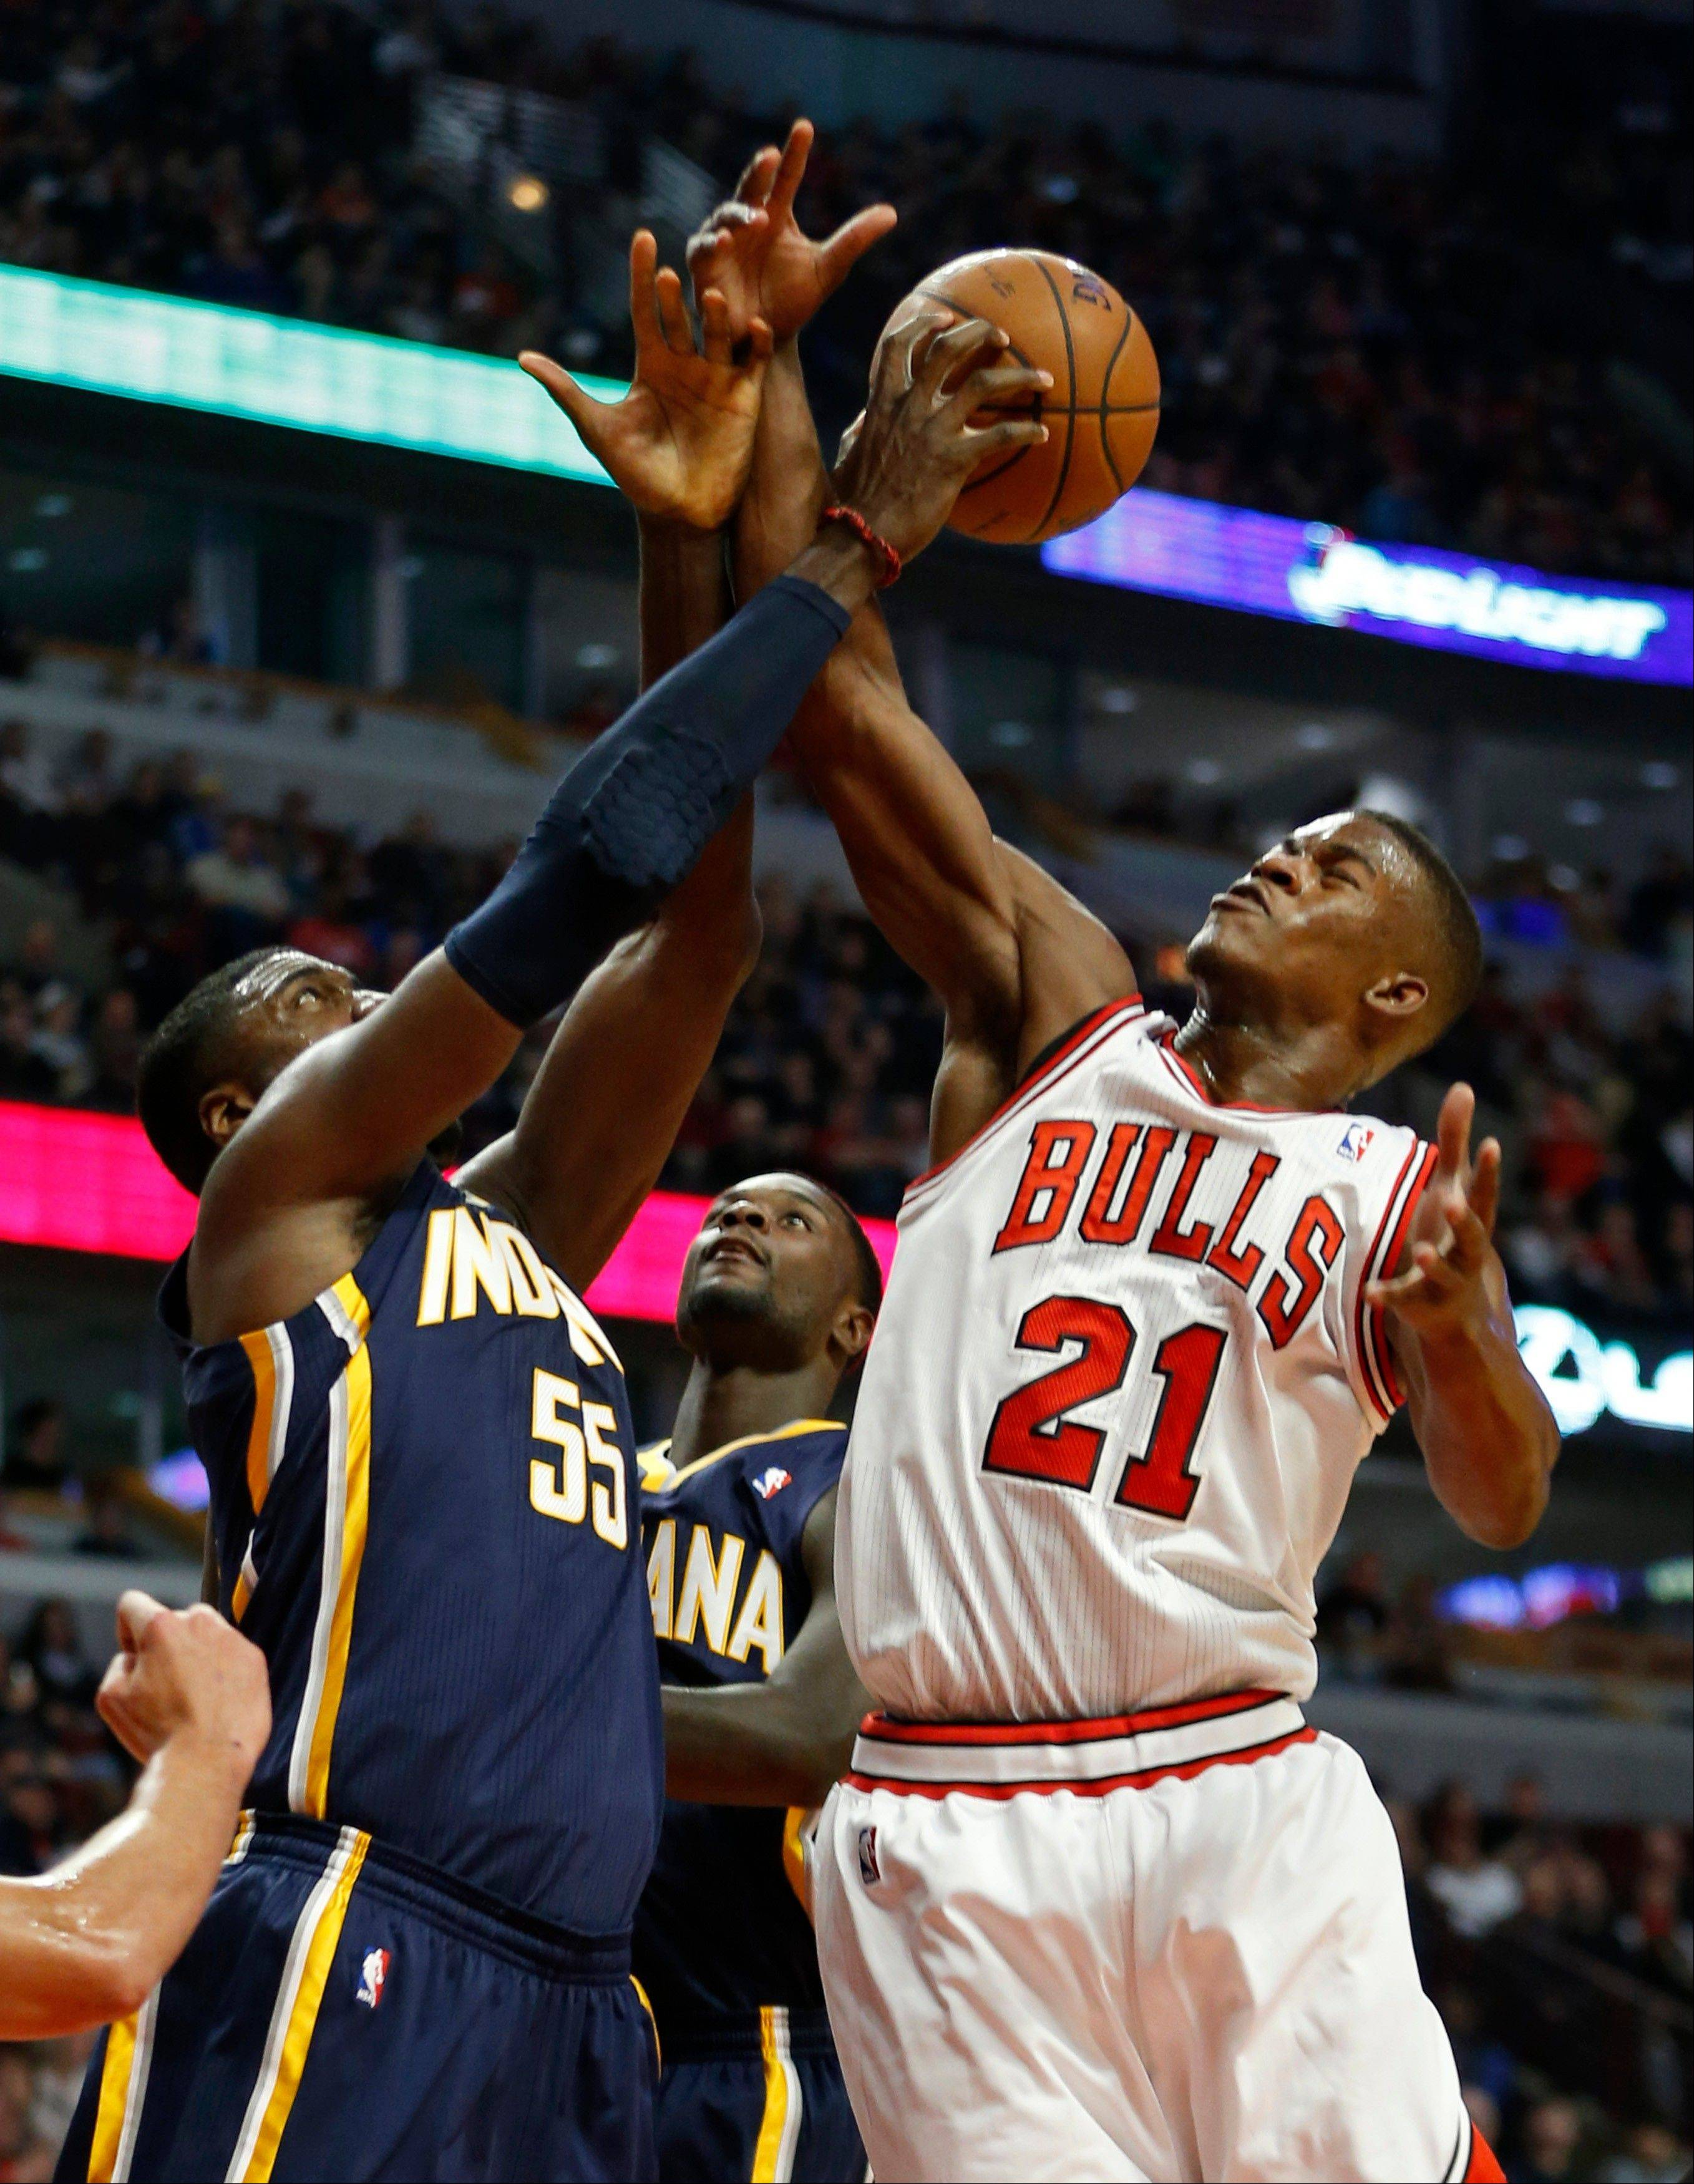 The Bulls' Jimmy Butler is sidelined with an injury to his right great toe, which Mike Spellman finds educational.